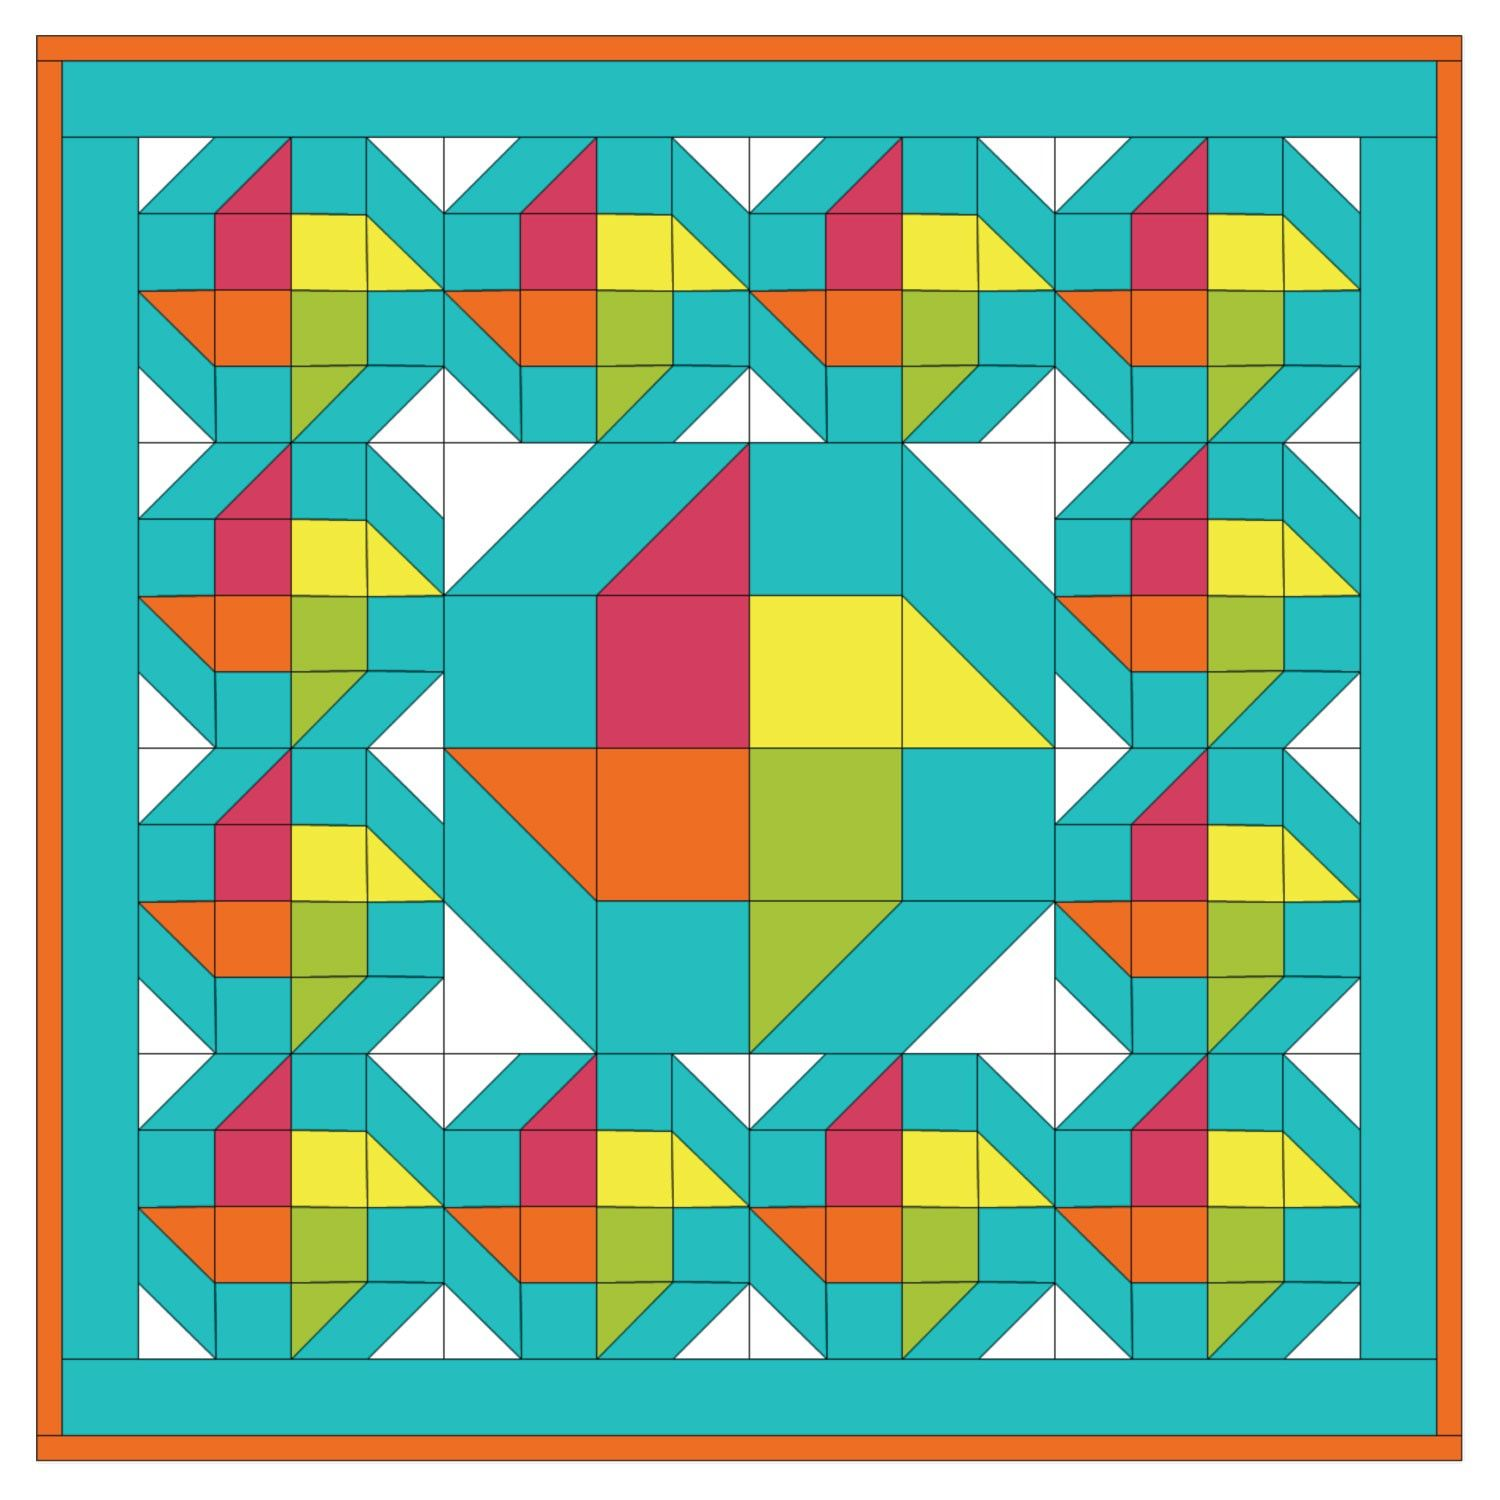 Studio Table Topper Twister Quilt Pattern- Free (PQ10236i) | nbaby ... : parallelogram quilt pattern - Adamdwight.com